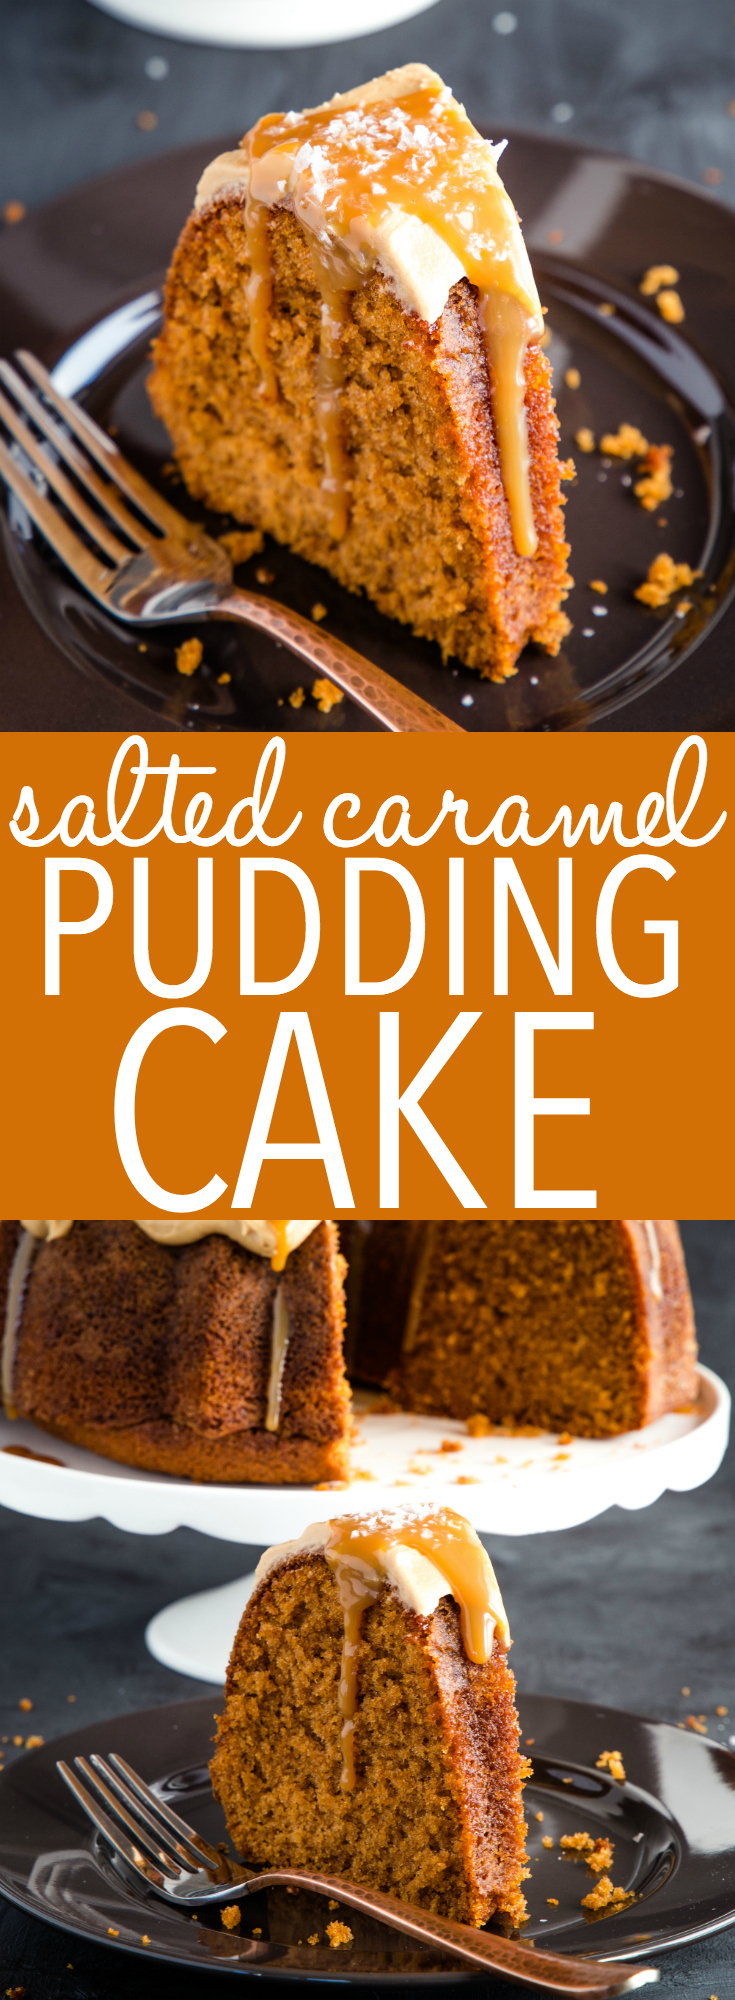 This Best Ever Salted Caramel Pudding Cake is so moist and flavourful with the perfect balance of salty and sweet! A tender caramel-flavoured cake is topped with salted caramel frosting, caramel sauce, and flaked sea salt! Recipe from thebusybaker.ca! #saltedcaramel #caramel #cake #puddingcake #bundtcake #dessert #easyrecipe #easydessert #sweet #treat #simple #fall #winter #autumn  via @busybakerblog